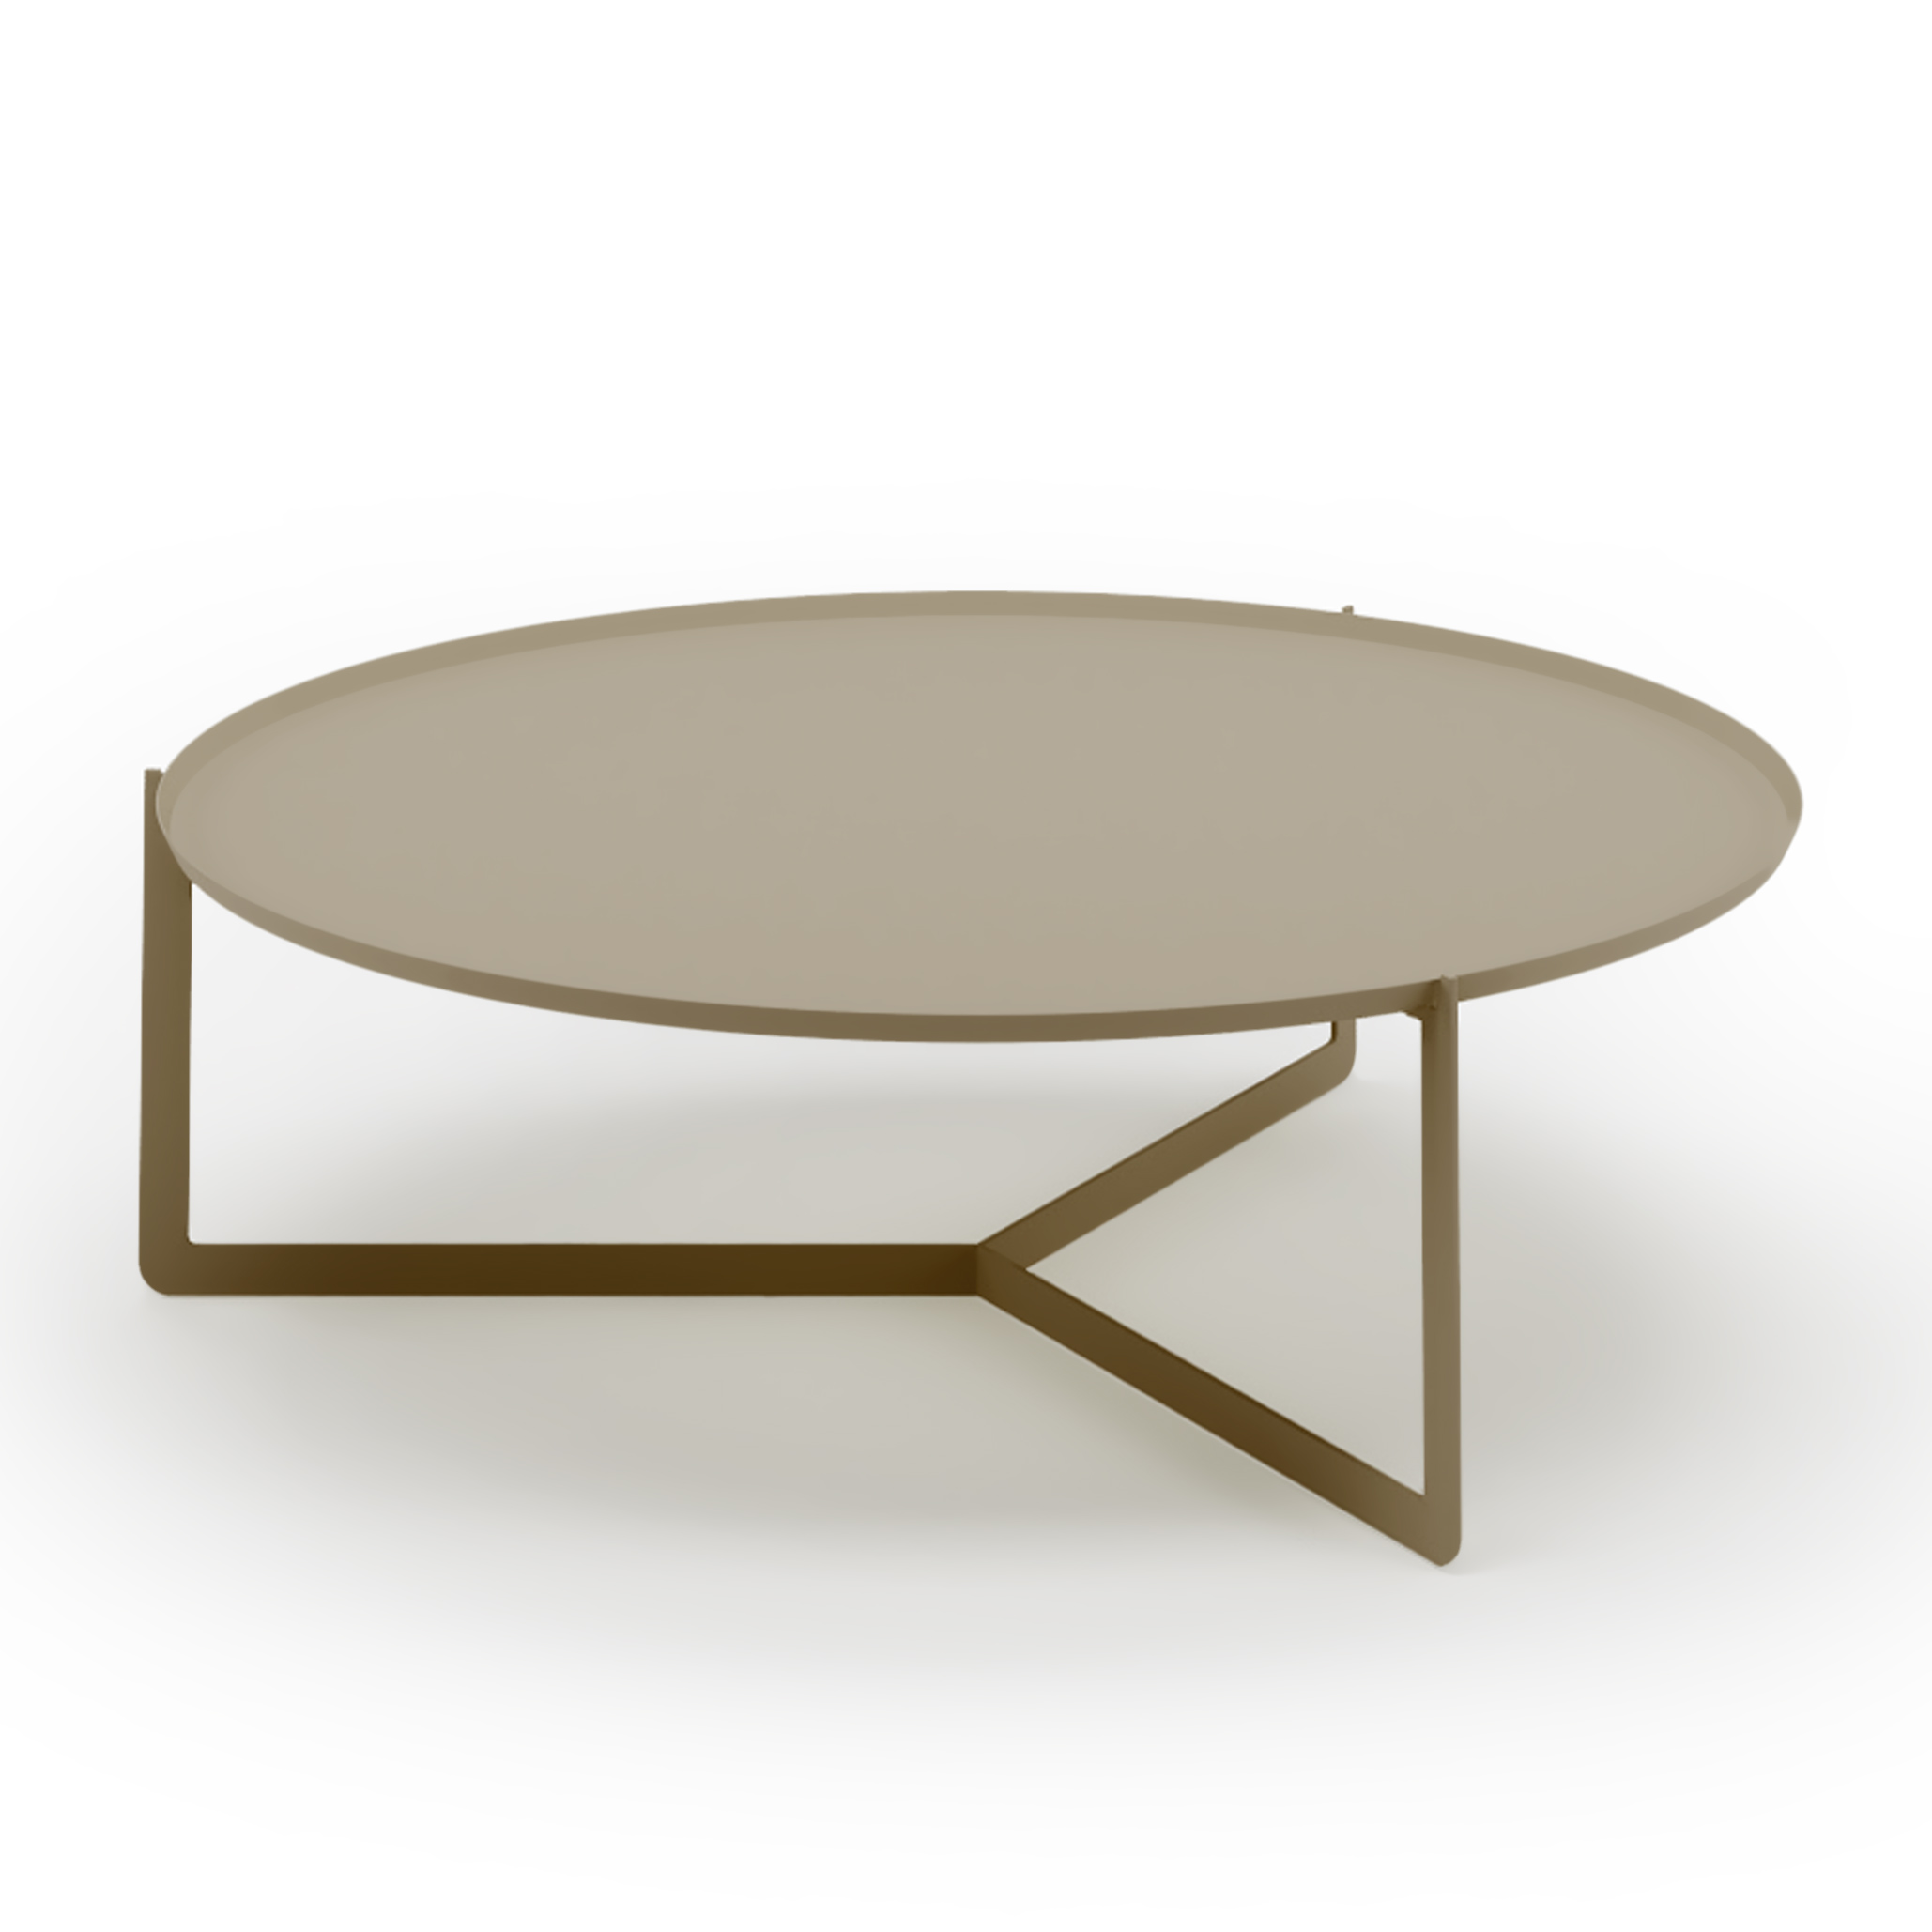 ROUND 5 coffee table made of metal cm ø95x31h